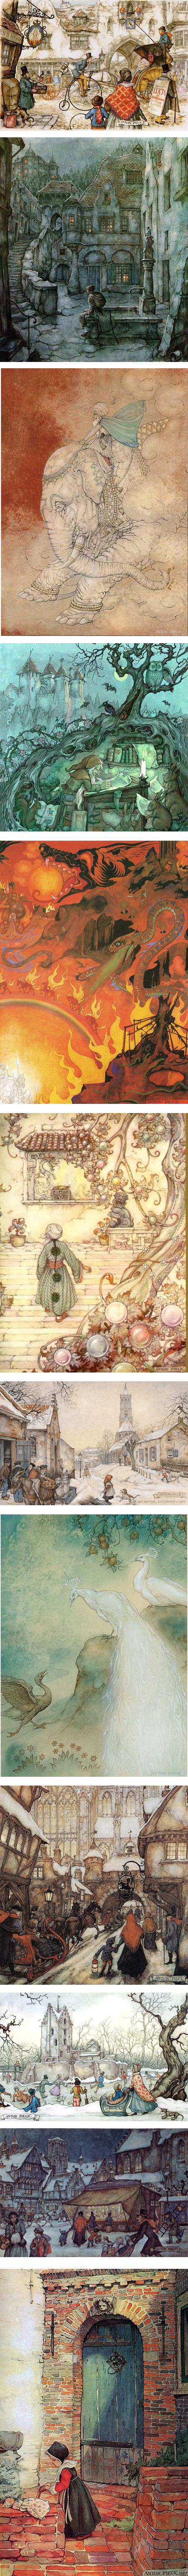 Anton Pieck illustrations